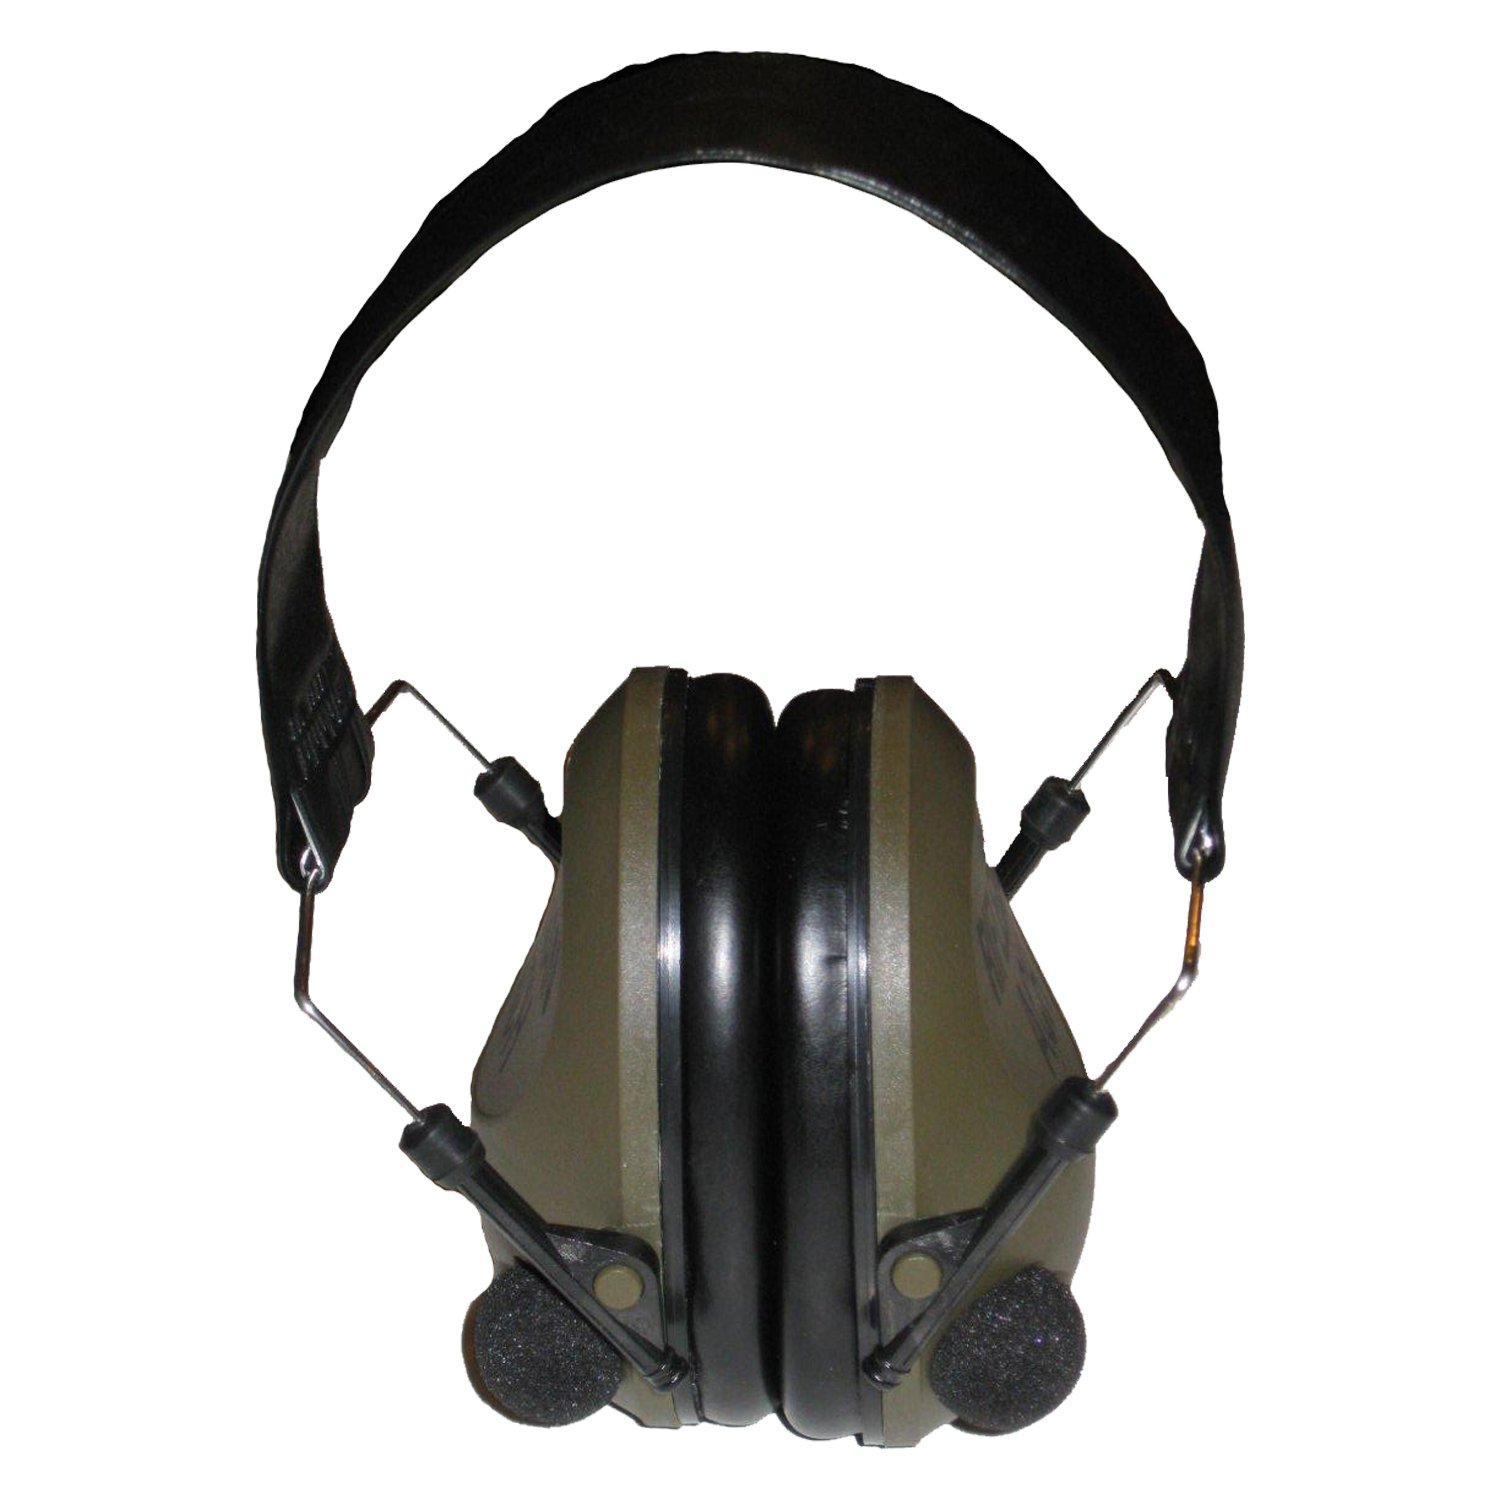 Rifleman - Rifleman ACH - RFACH - Benchmaster - Hearing Protection - Ear Protection - Ear Muffs - Electronic Hearing Protection - Low Profile Altus Brands